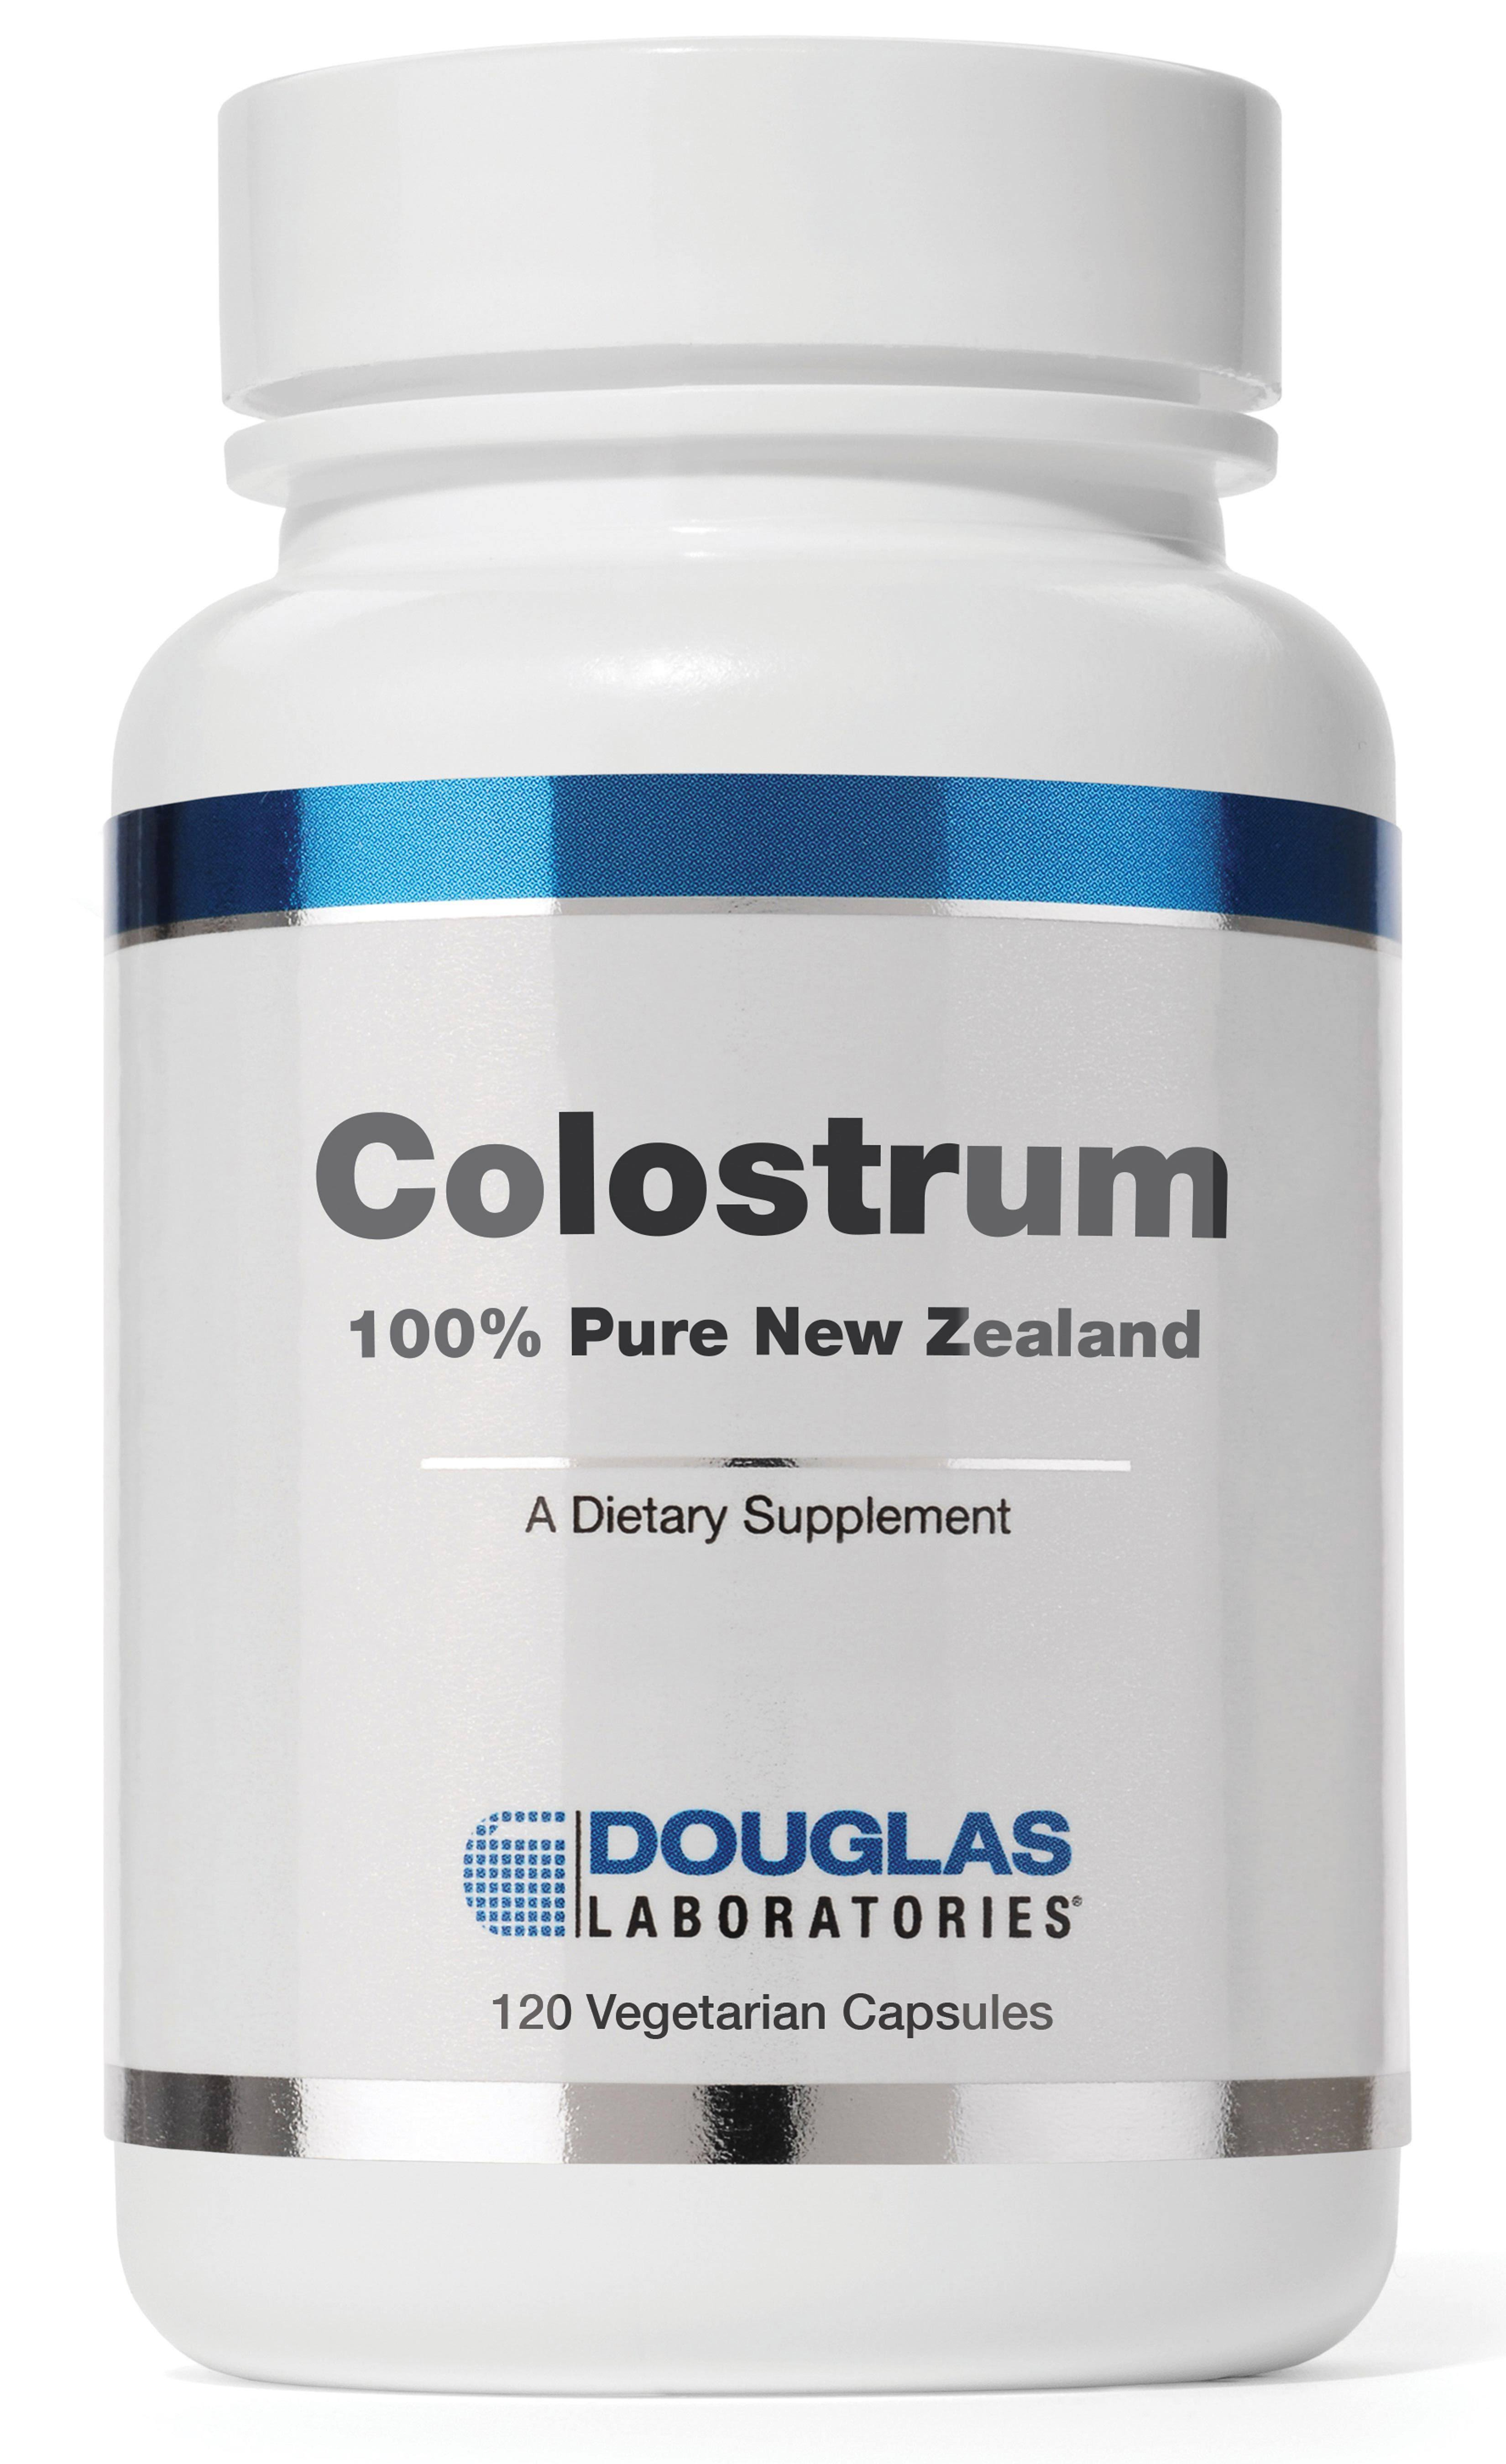 Douglas Laboratories Colostrum Supplement - 120ct